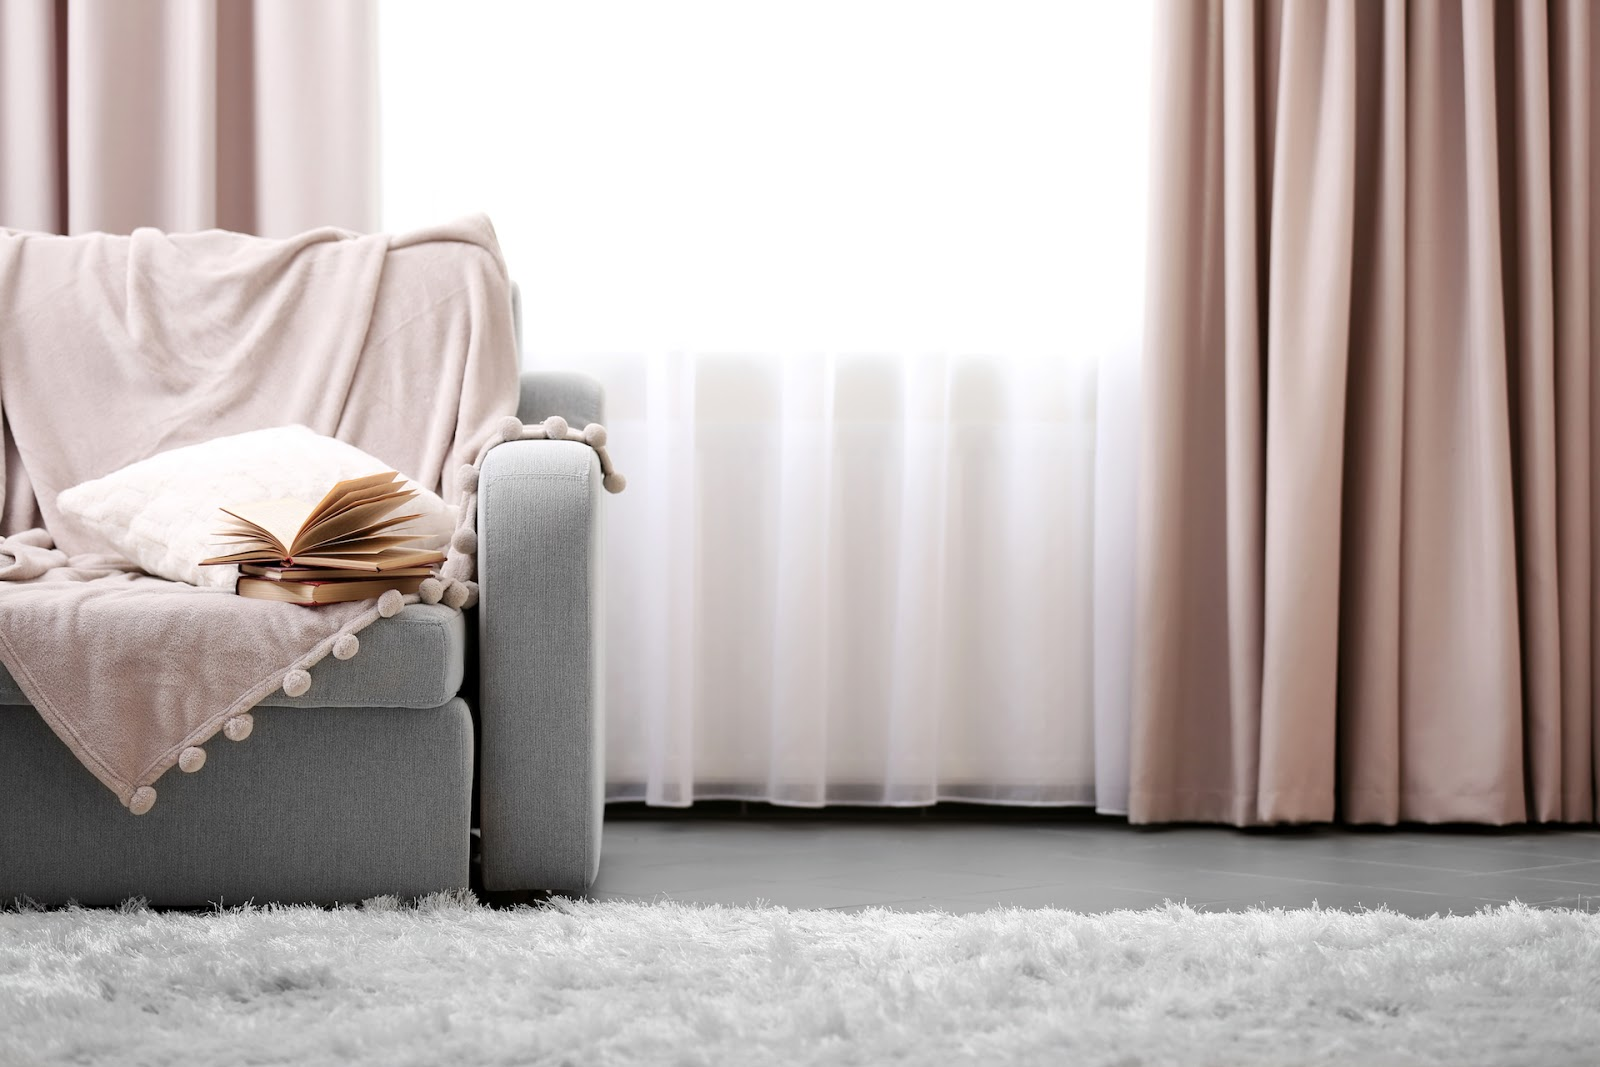 Dusty rose curtains with grey couch and pink blanket draped over itv